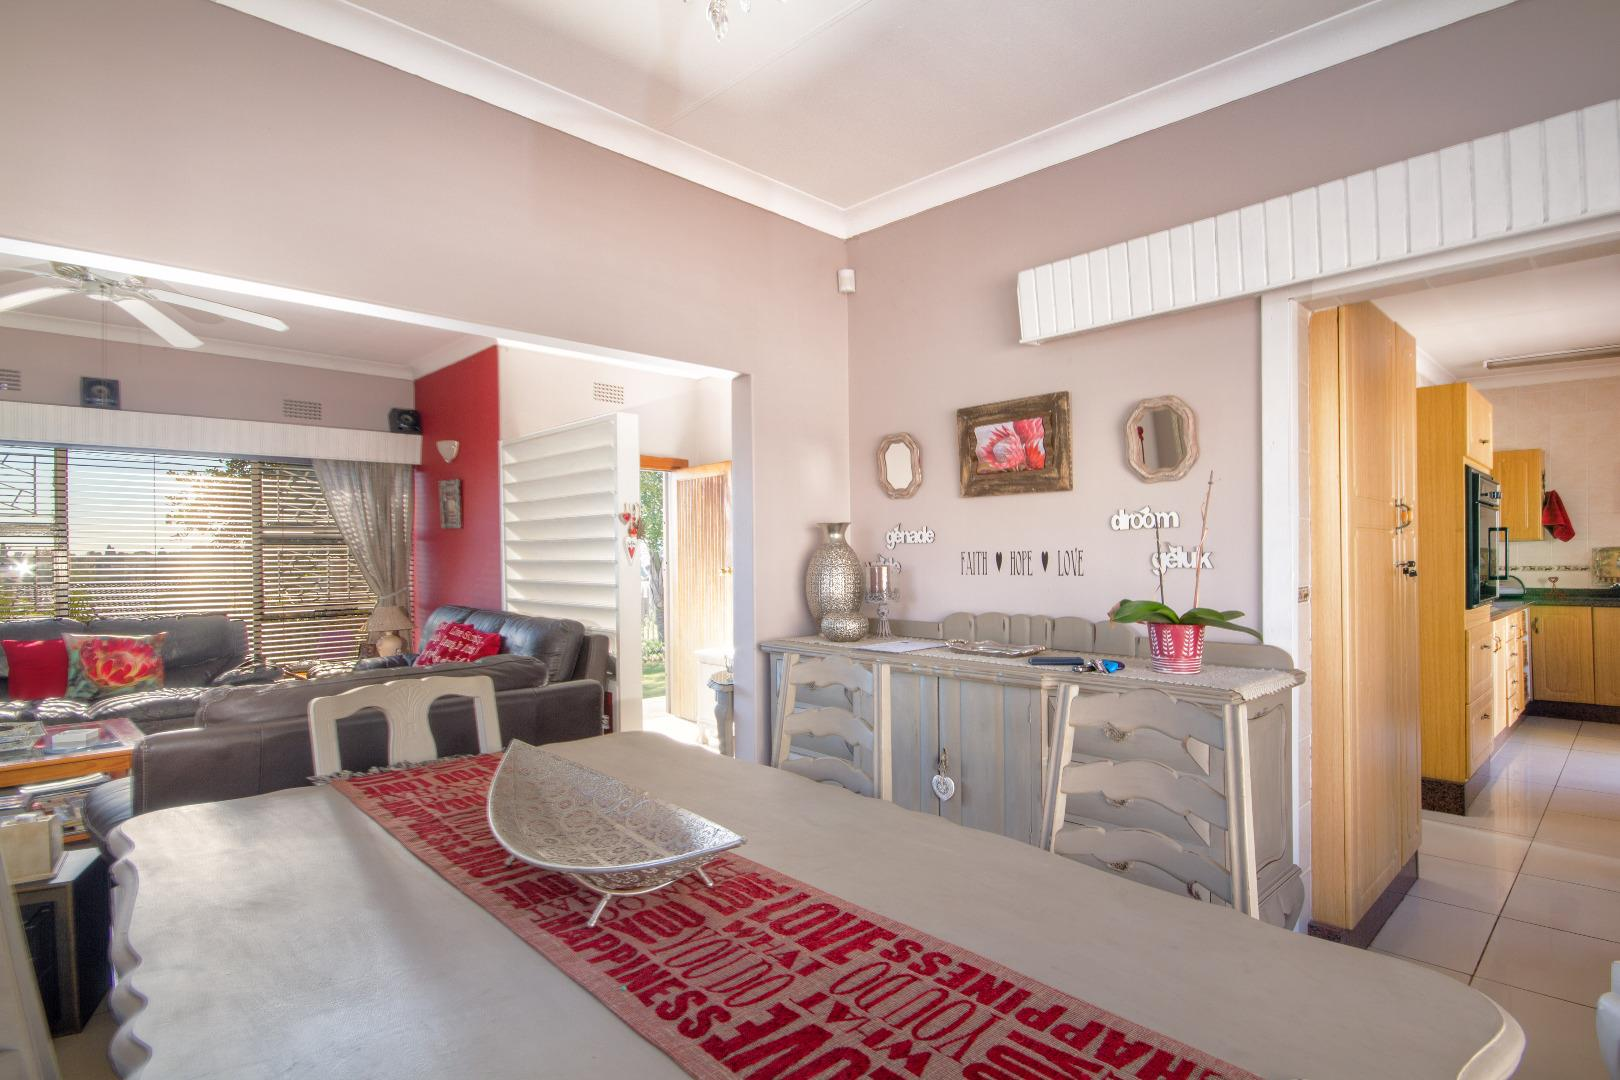 3 Bedroom House for Sale in Breaunanda, Roodepoort - Gauteng